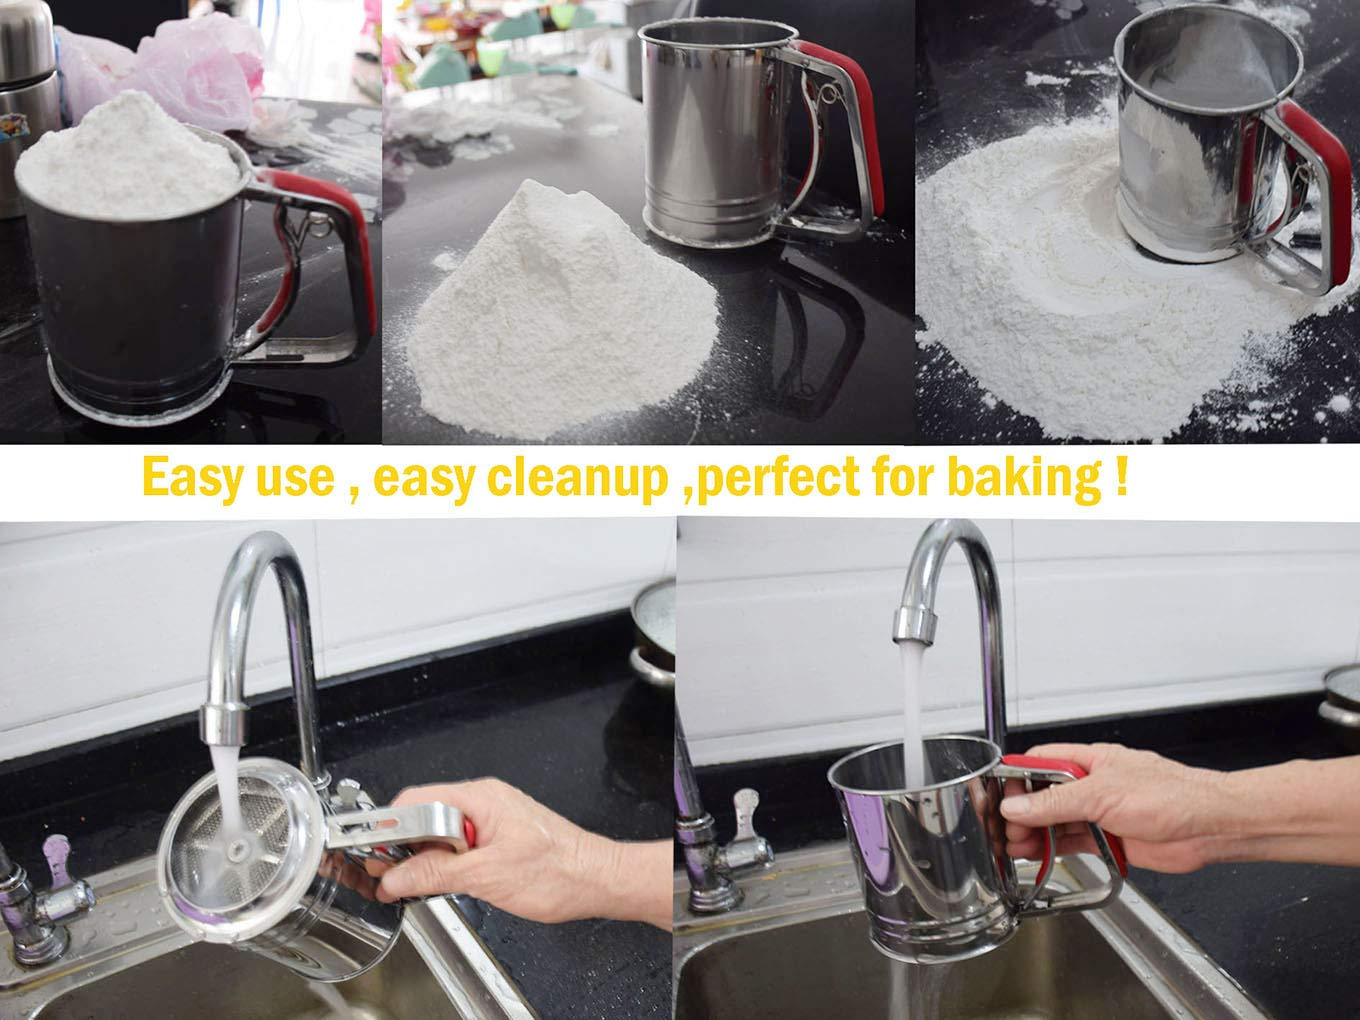 Kitchen aid Flour Sifter One Hand with 3 sifter meshes 3 Cup for Baking by YongLy (Image #5)